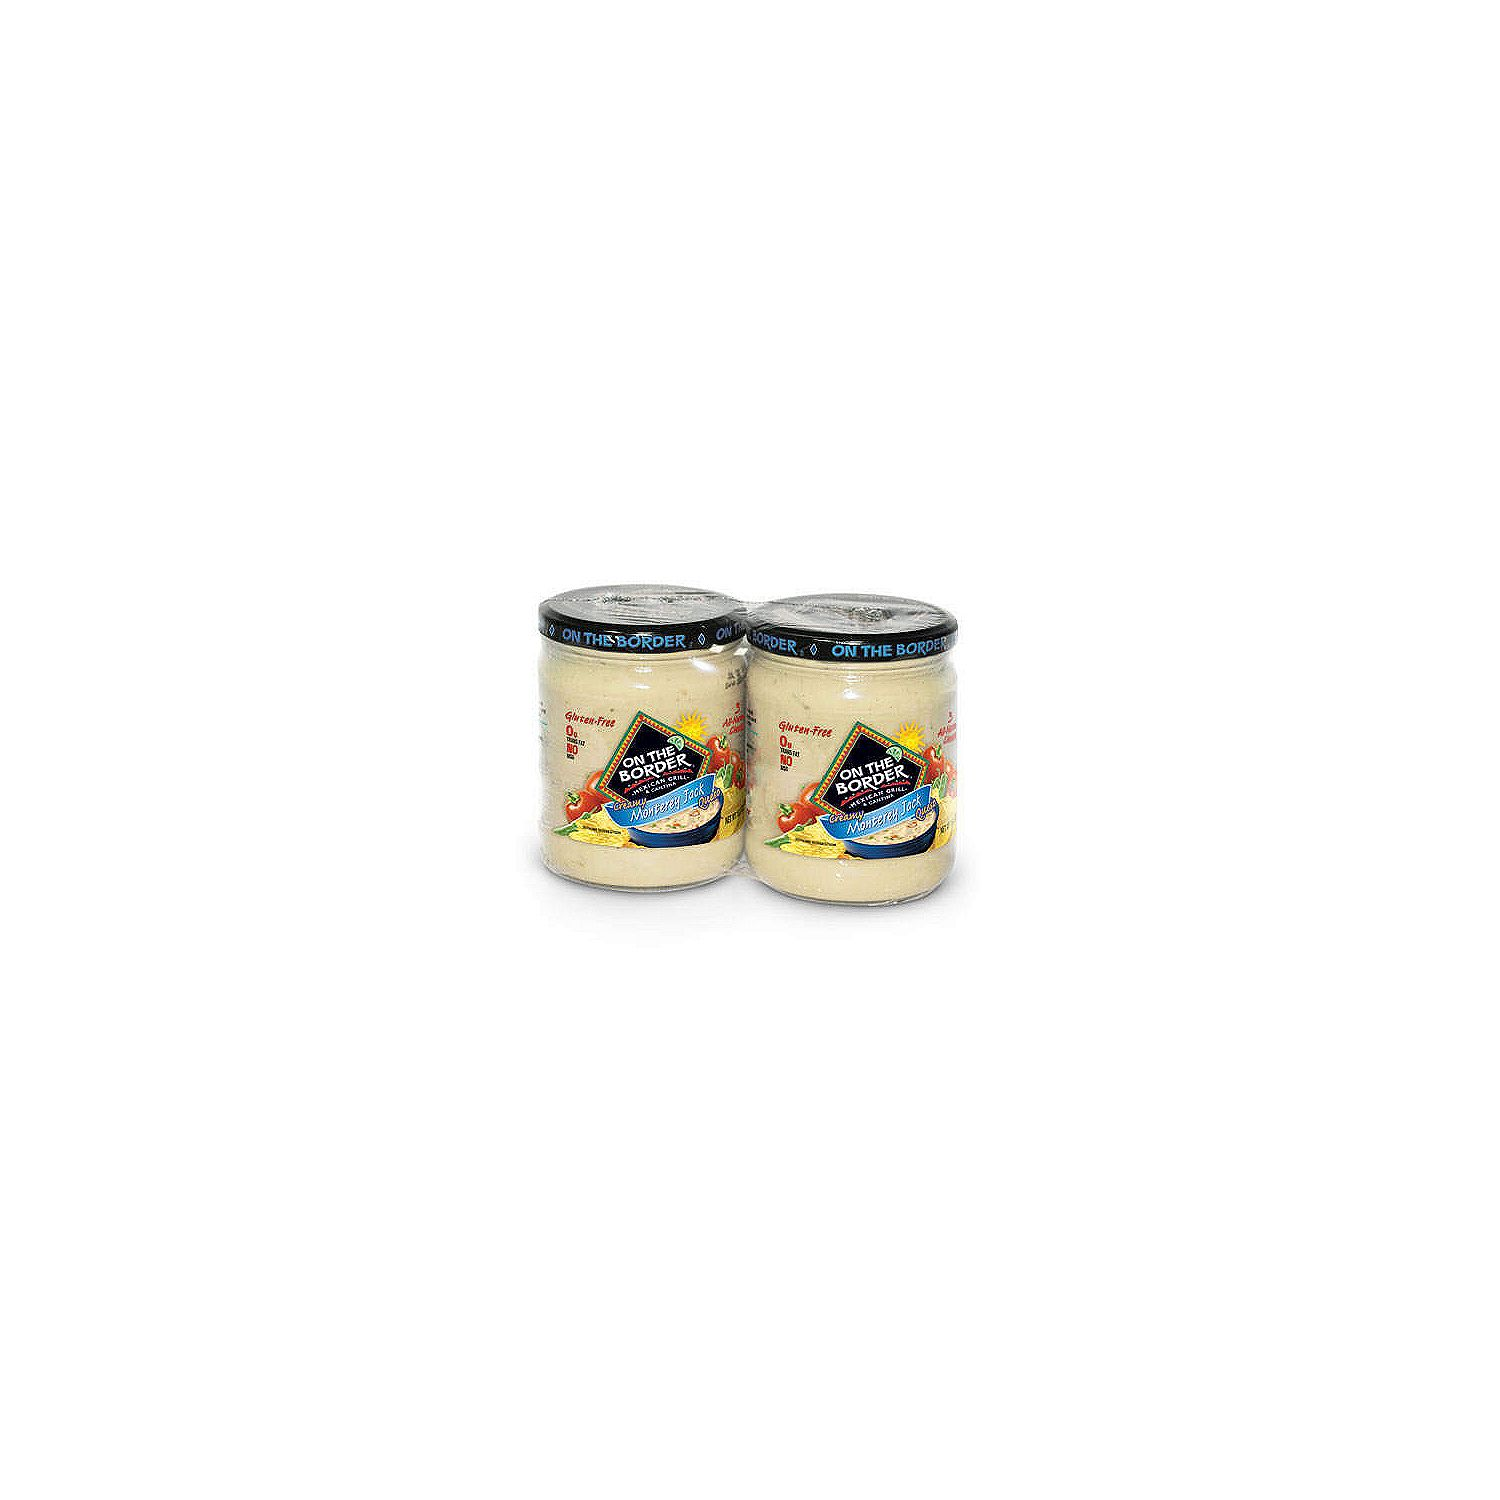 On The Border Monterey Jack Queso 2 pk. by